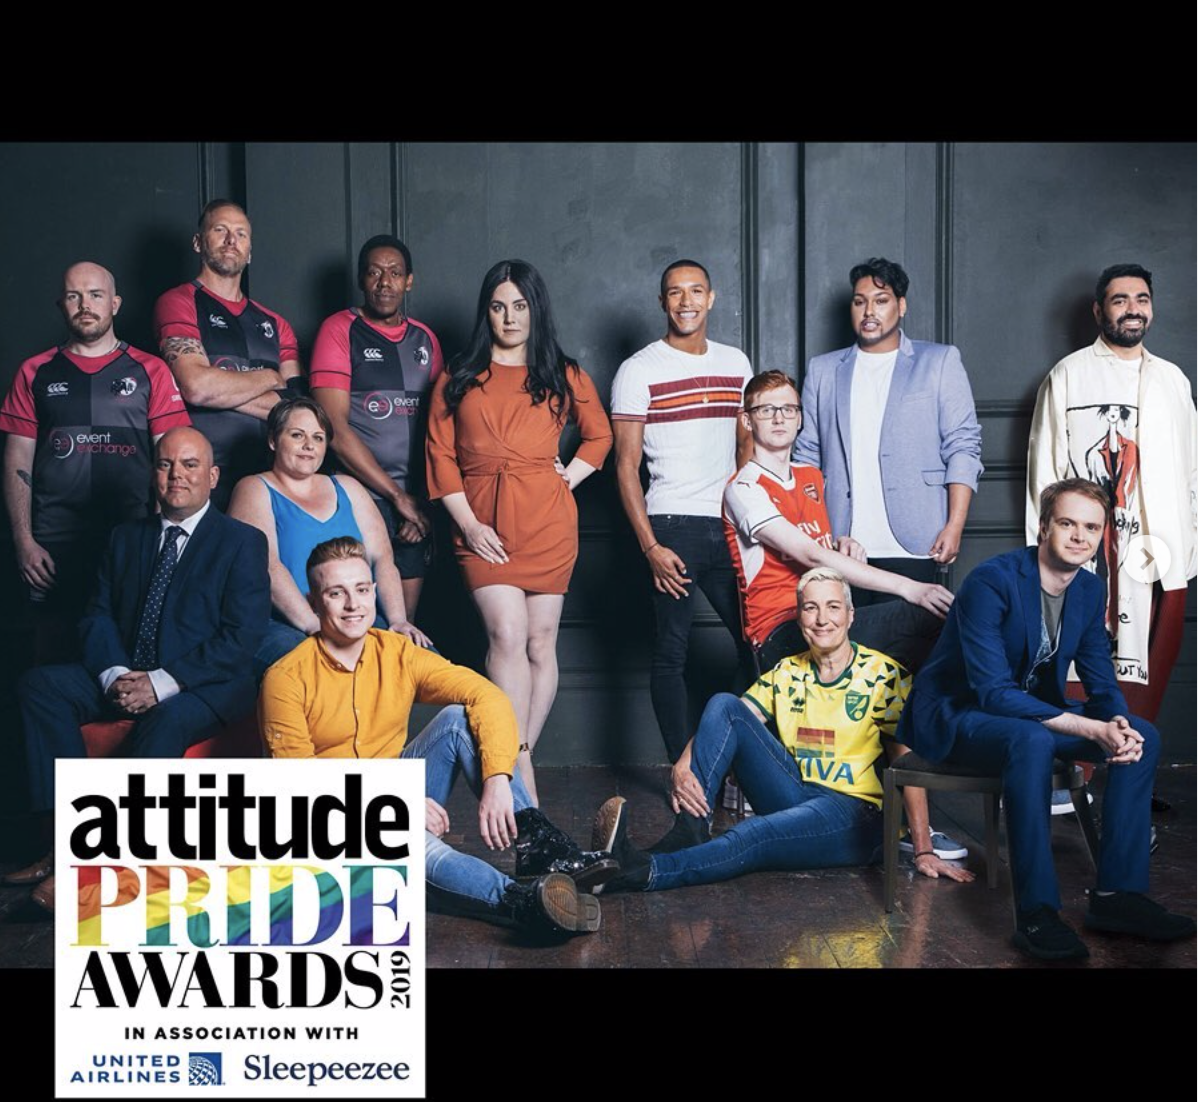 ATTITUDE MAGAZINE - This is the UK best selling LGBTQ lifestyle mag, and they currently sharing inspiring stories from important figures in the community.